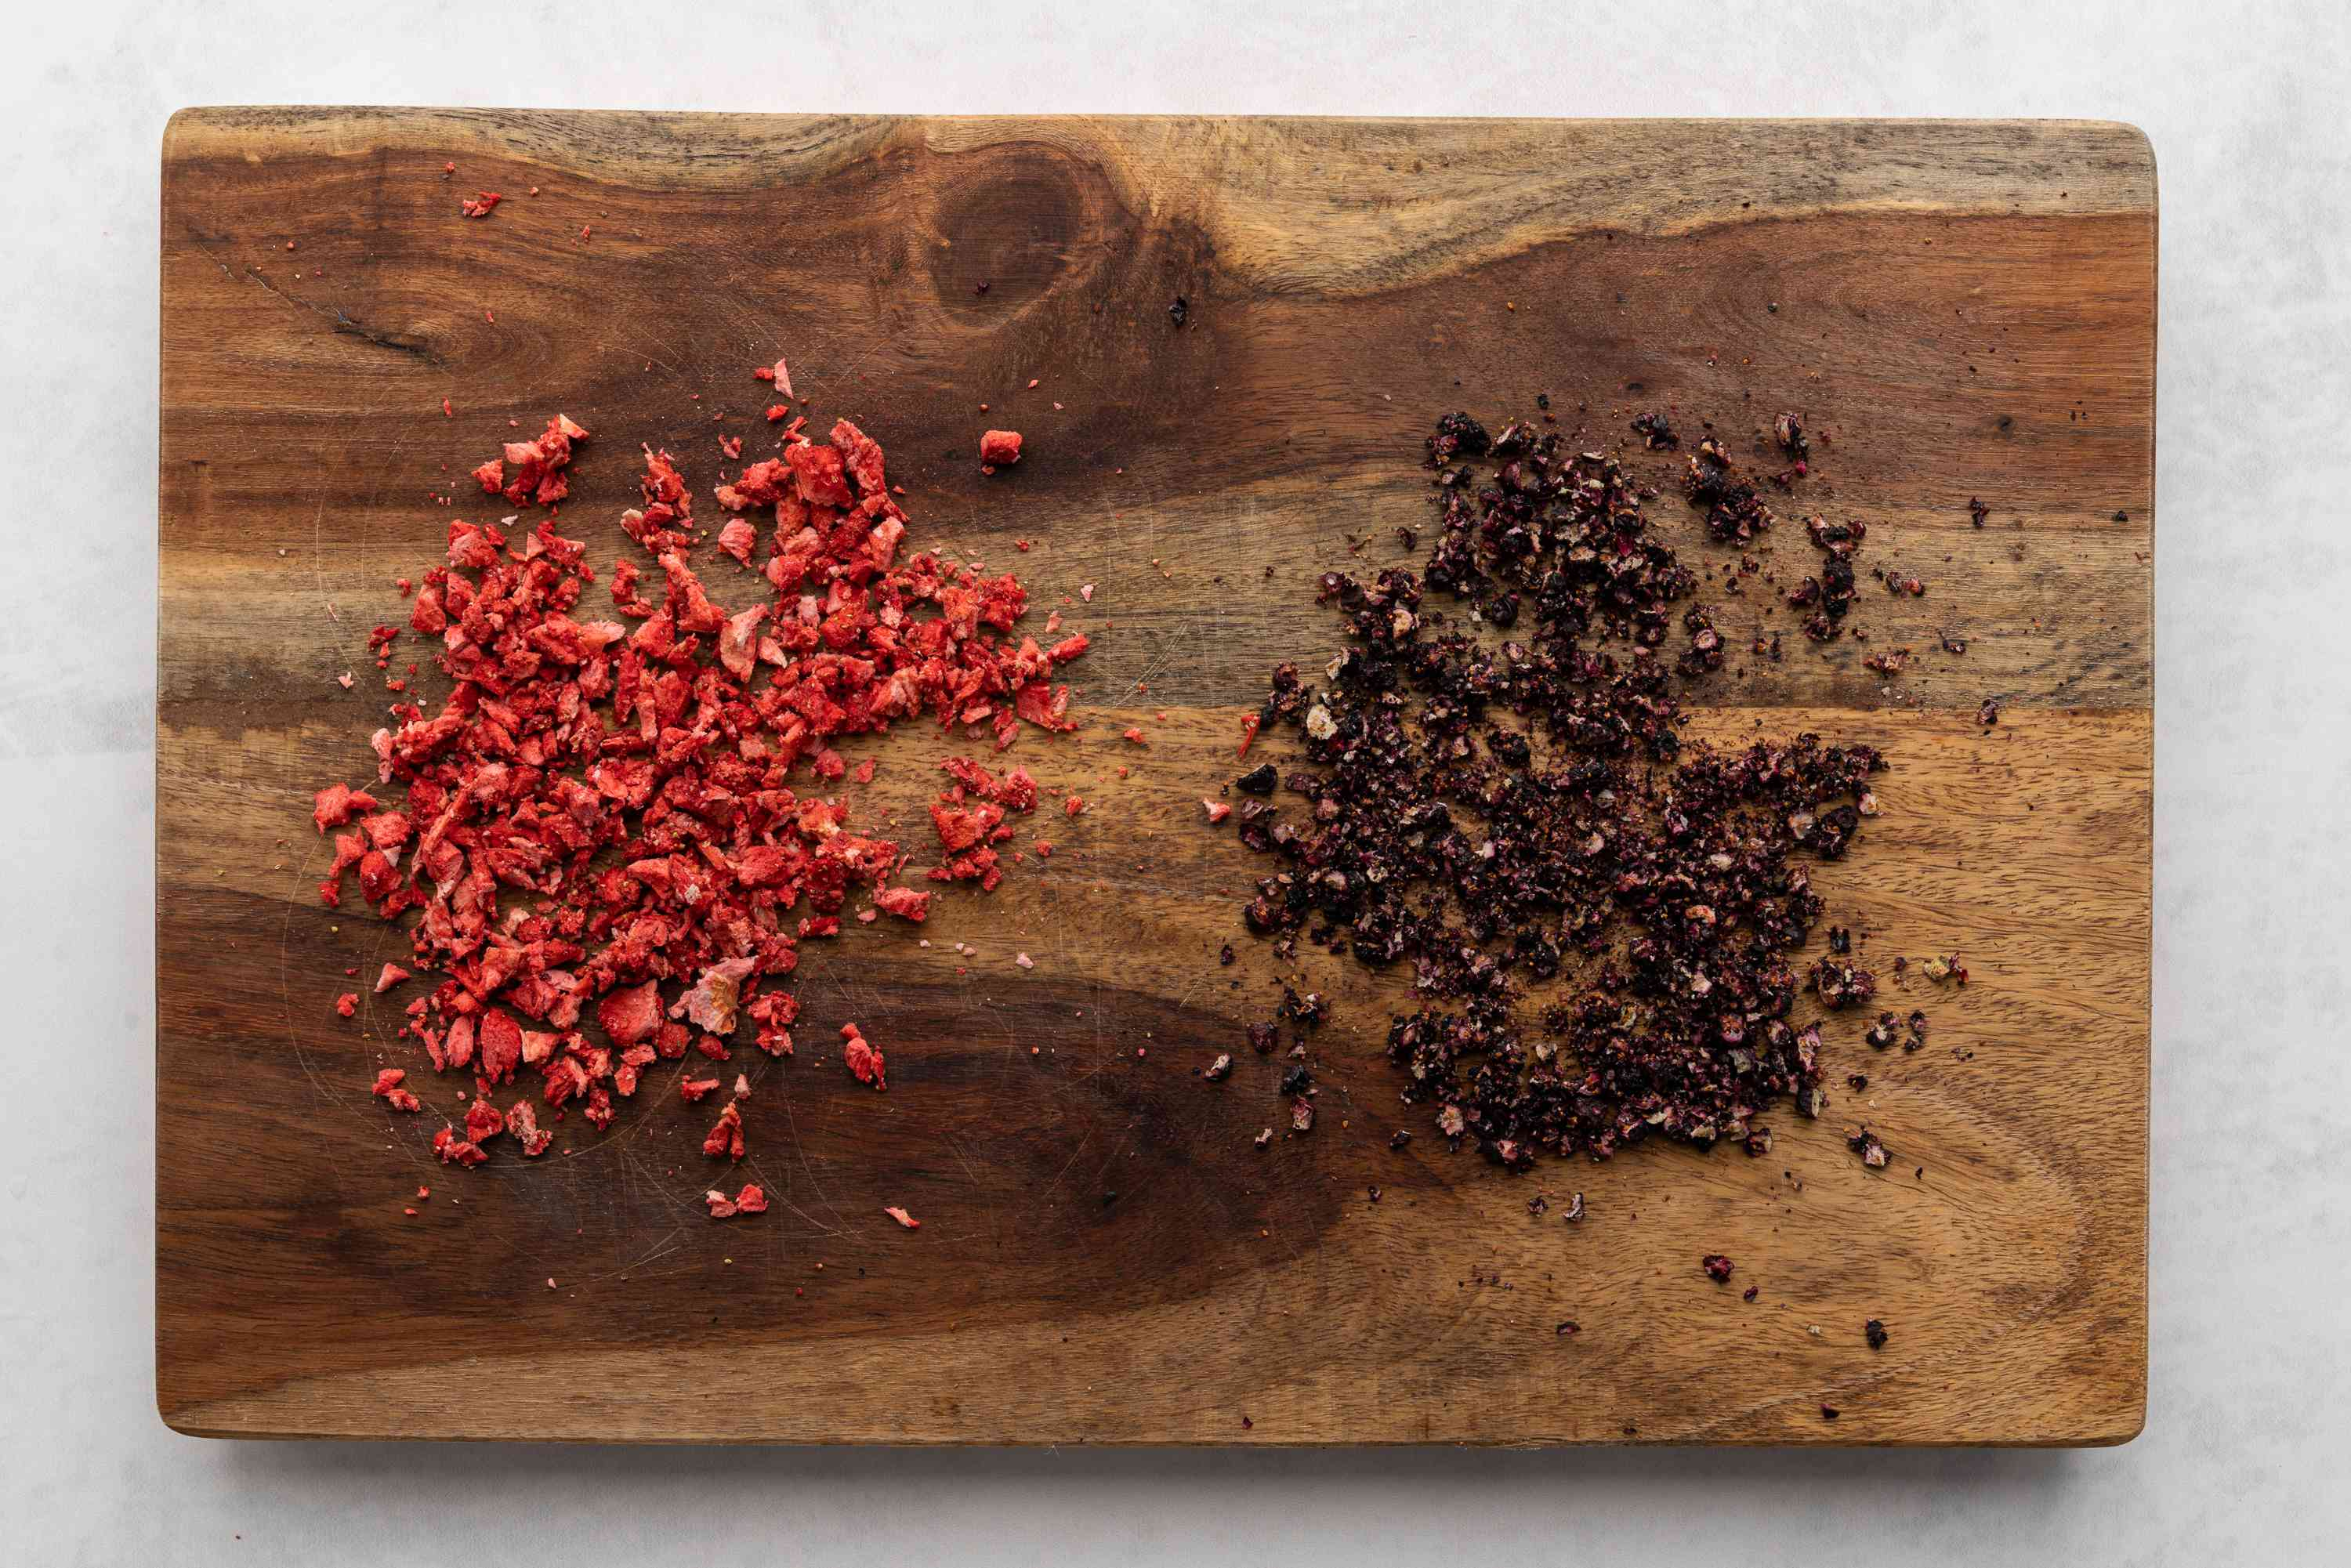 Finely chopped freeze-dried strawberries and blueberries on a cutting board